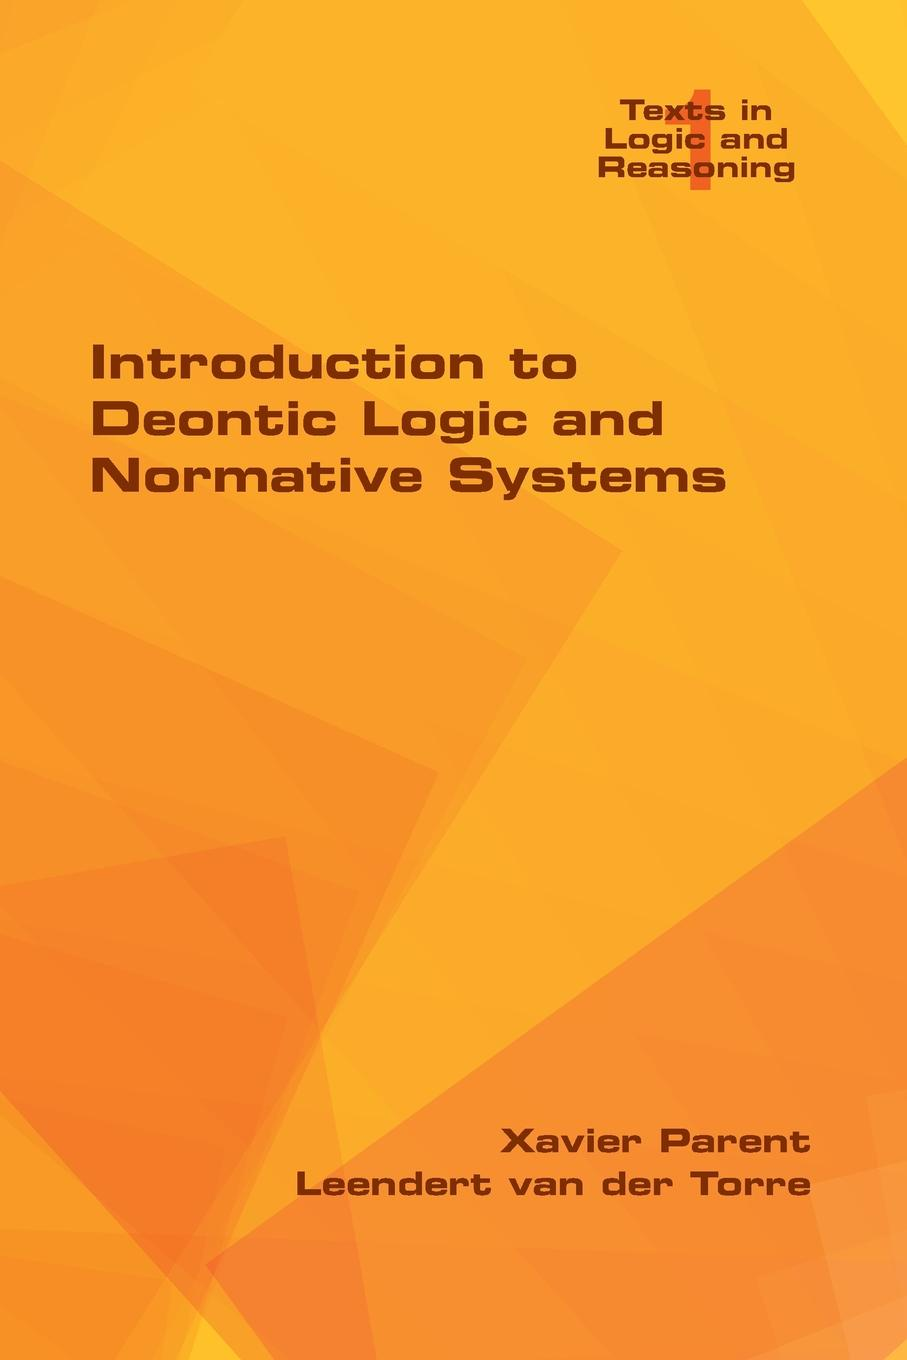 Xavier Parent, Leendert van der Torre Introduction to Deontic Logic and Normative Systems logic methodology and philosophy of science logic and science facing the new technologies